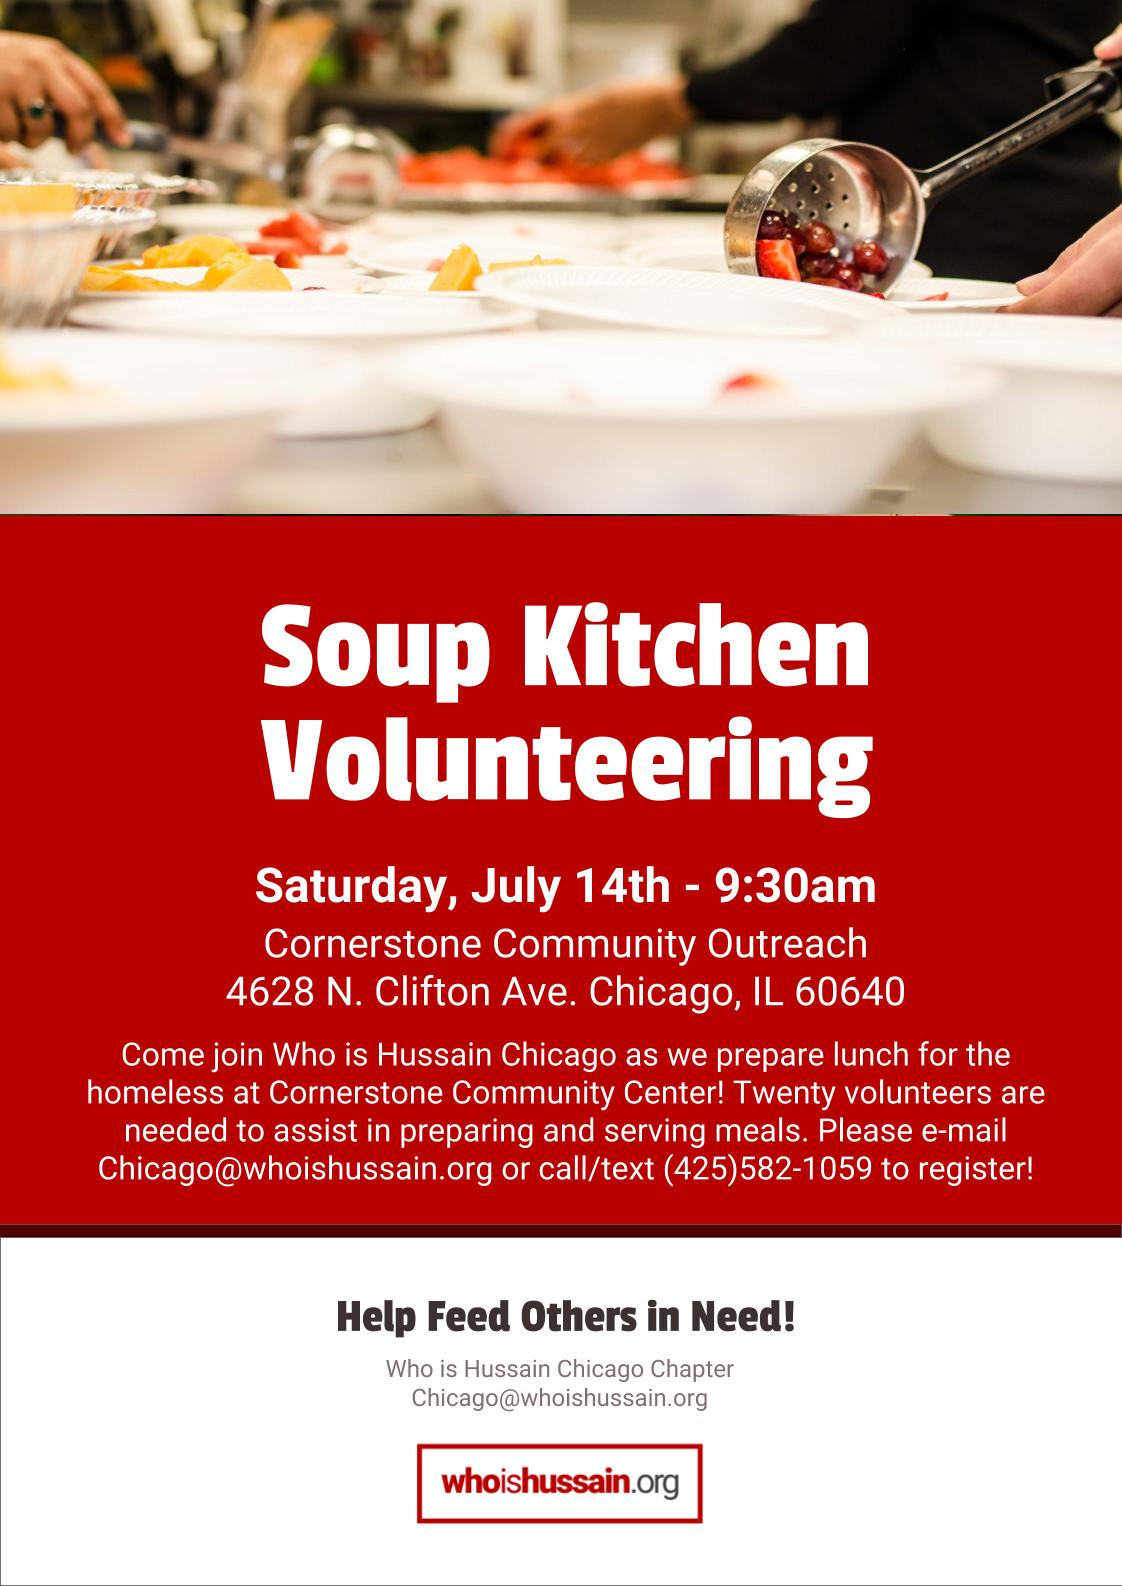 The Who Is Hussain Chicago Chapter Will Be Sending Twenty Volunteers To  Cornerstone Community Outreach To Assist In Preparing And Serving Food To  The Local ...